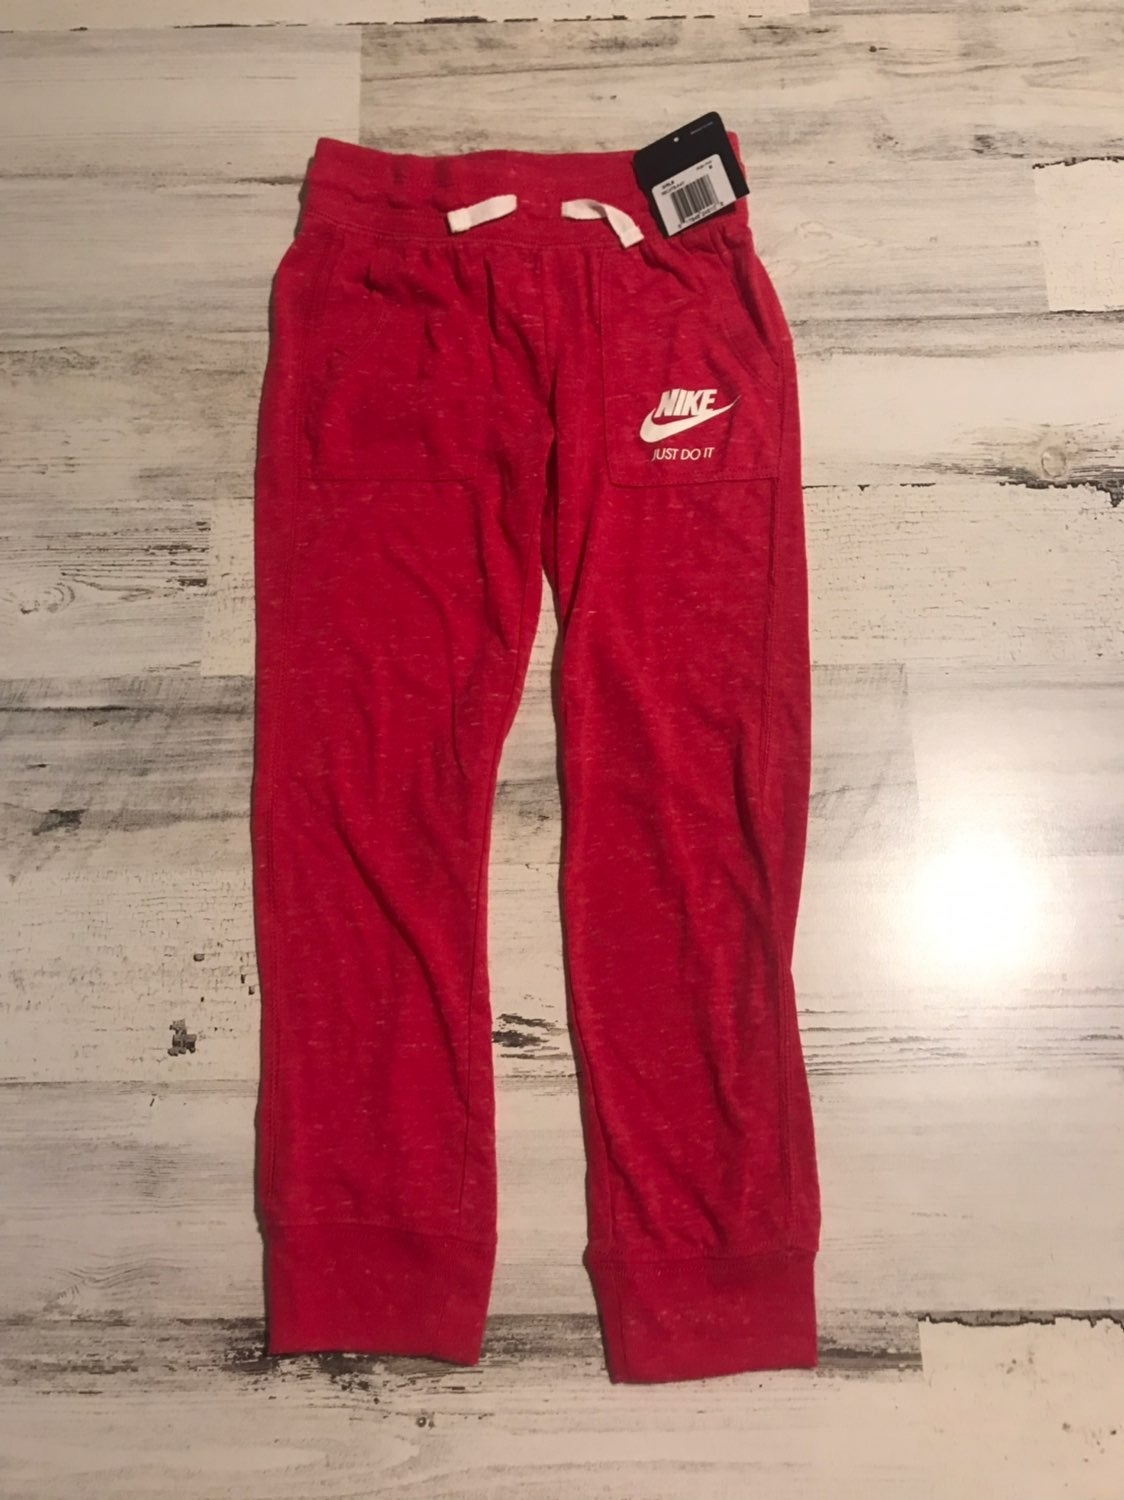 NIKE GIRLS 6 PANTS JUST DO IT RED